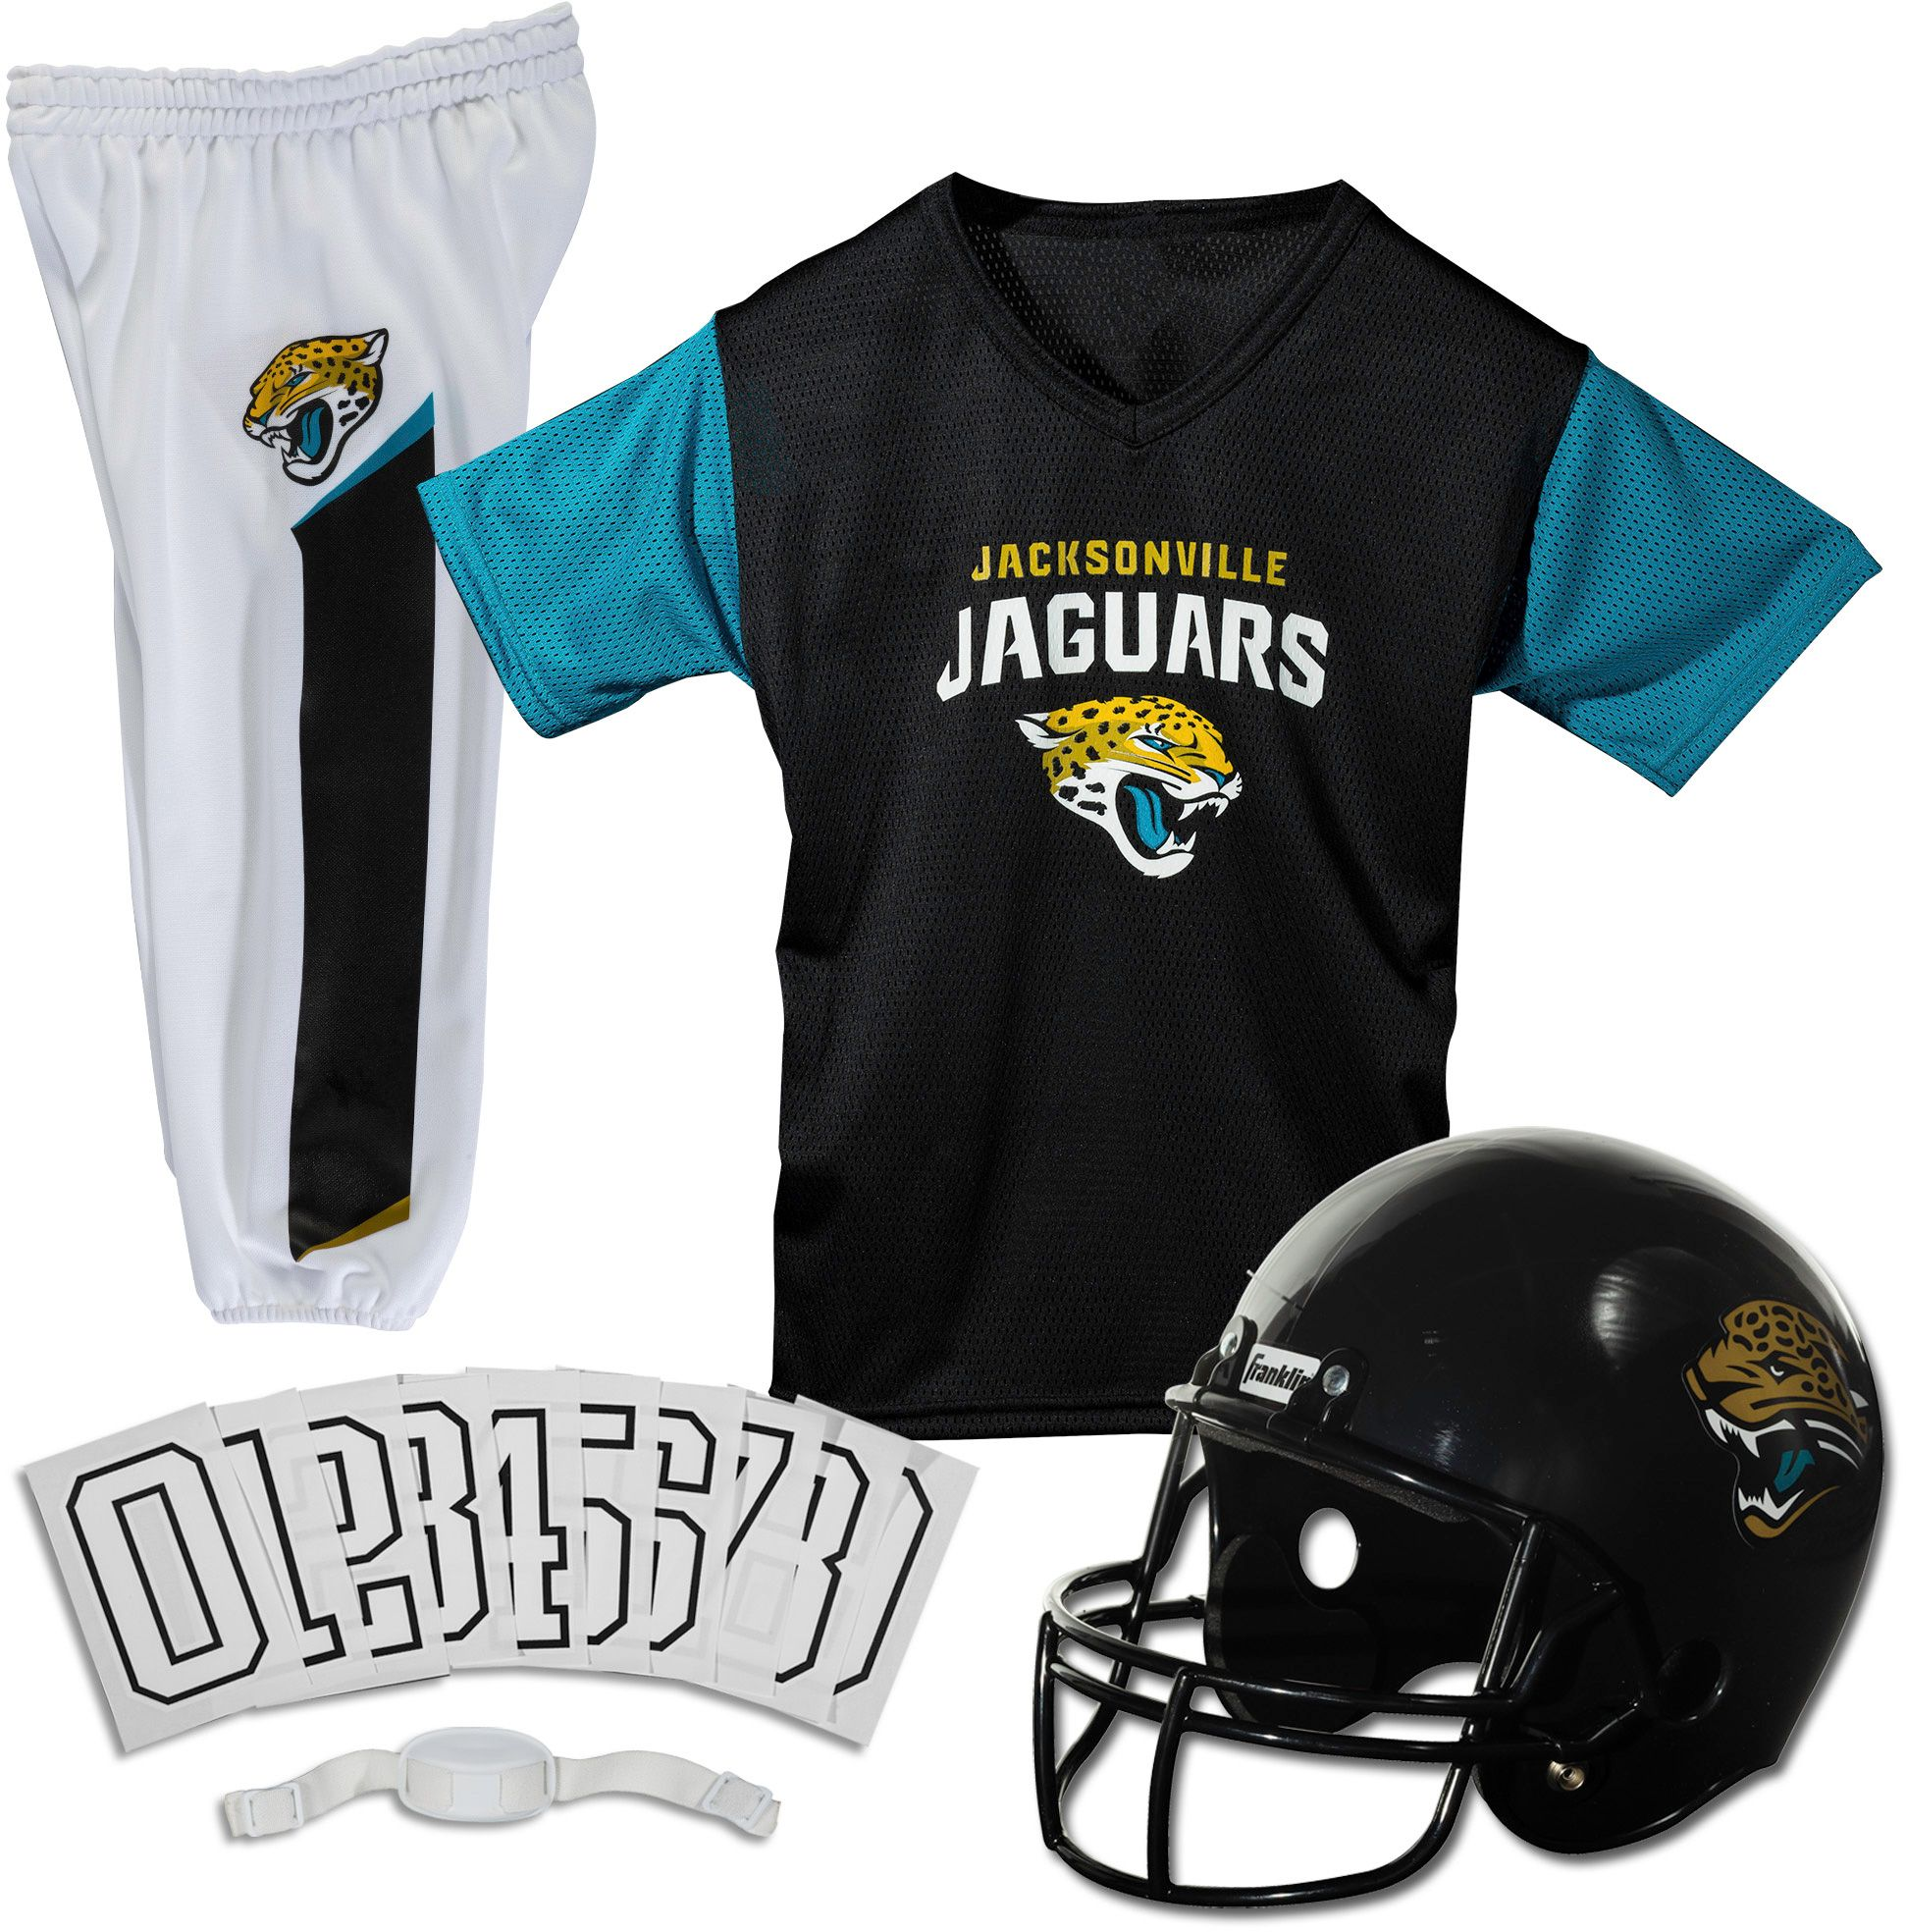 Franklin Jacksonville Jaguars Uniform Set